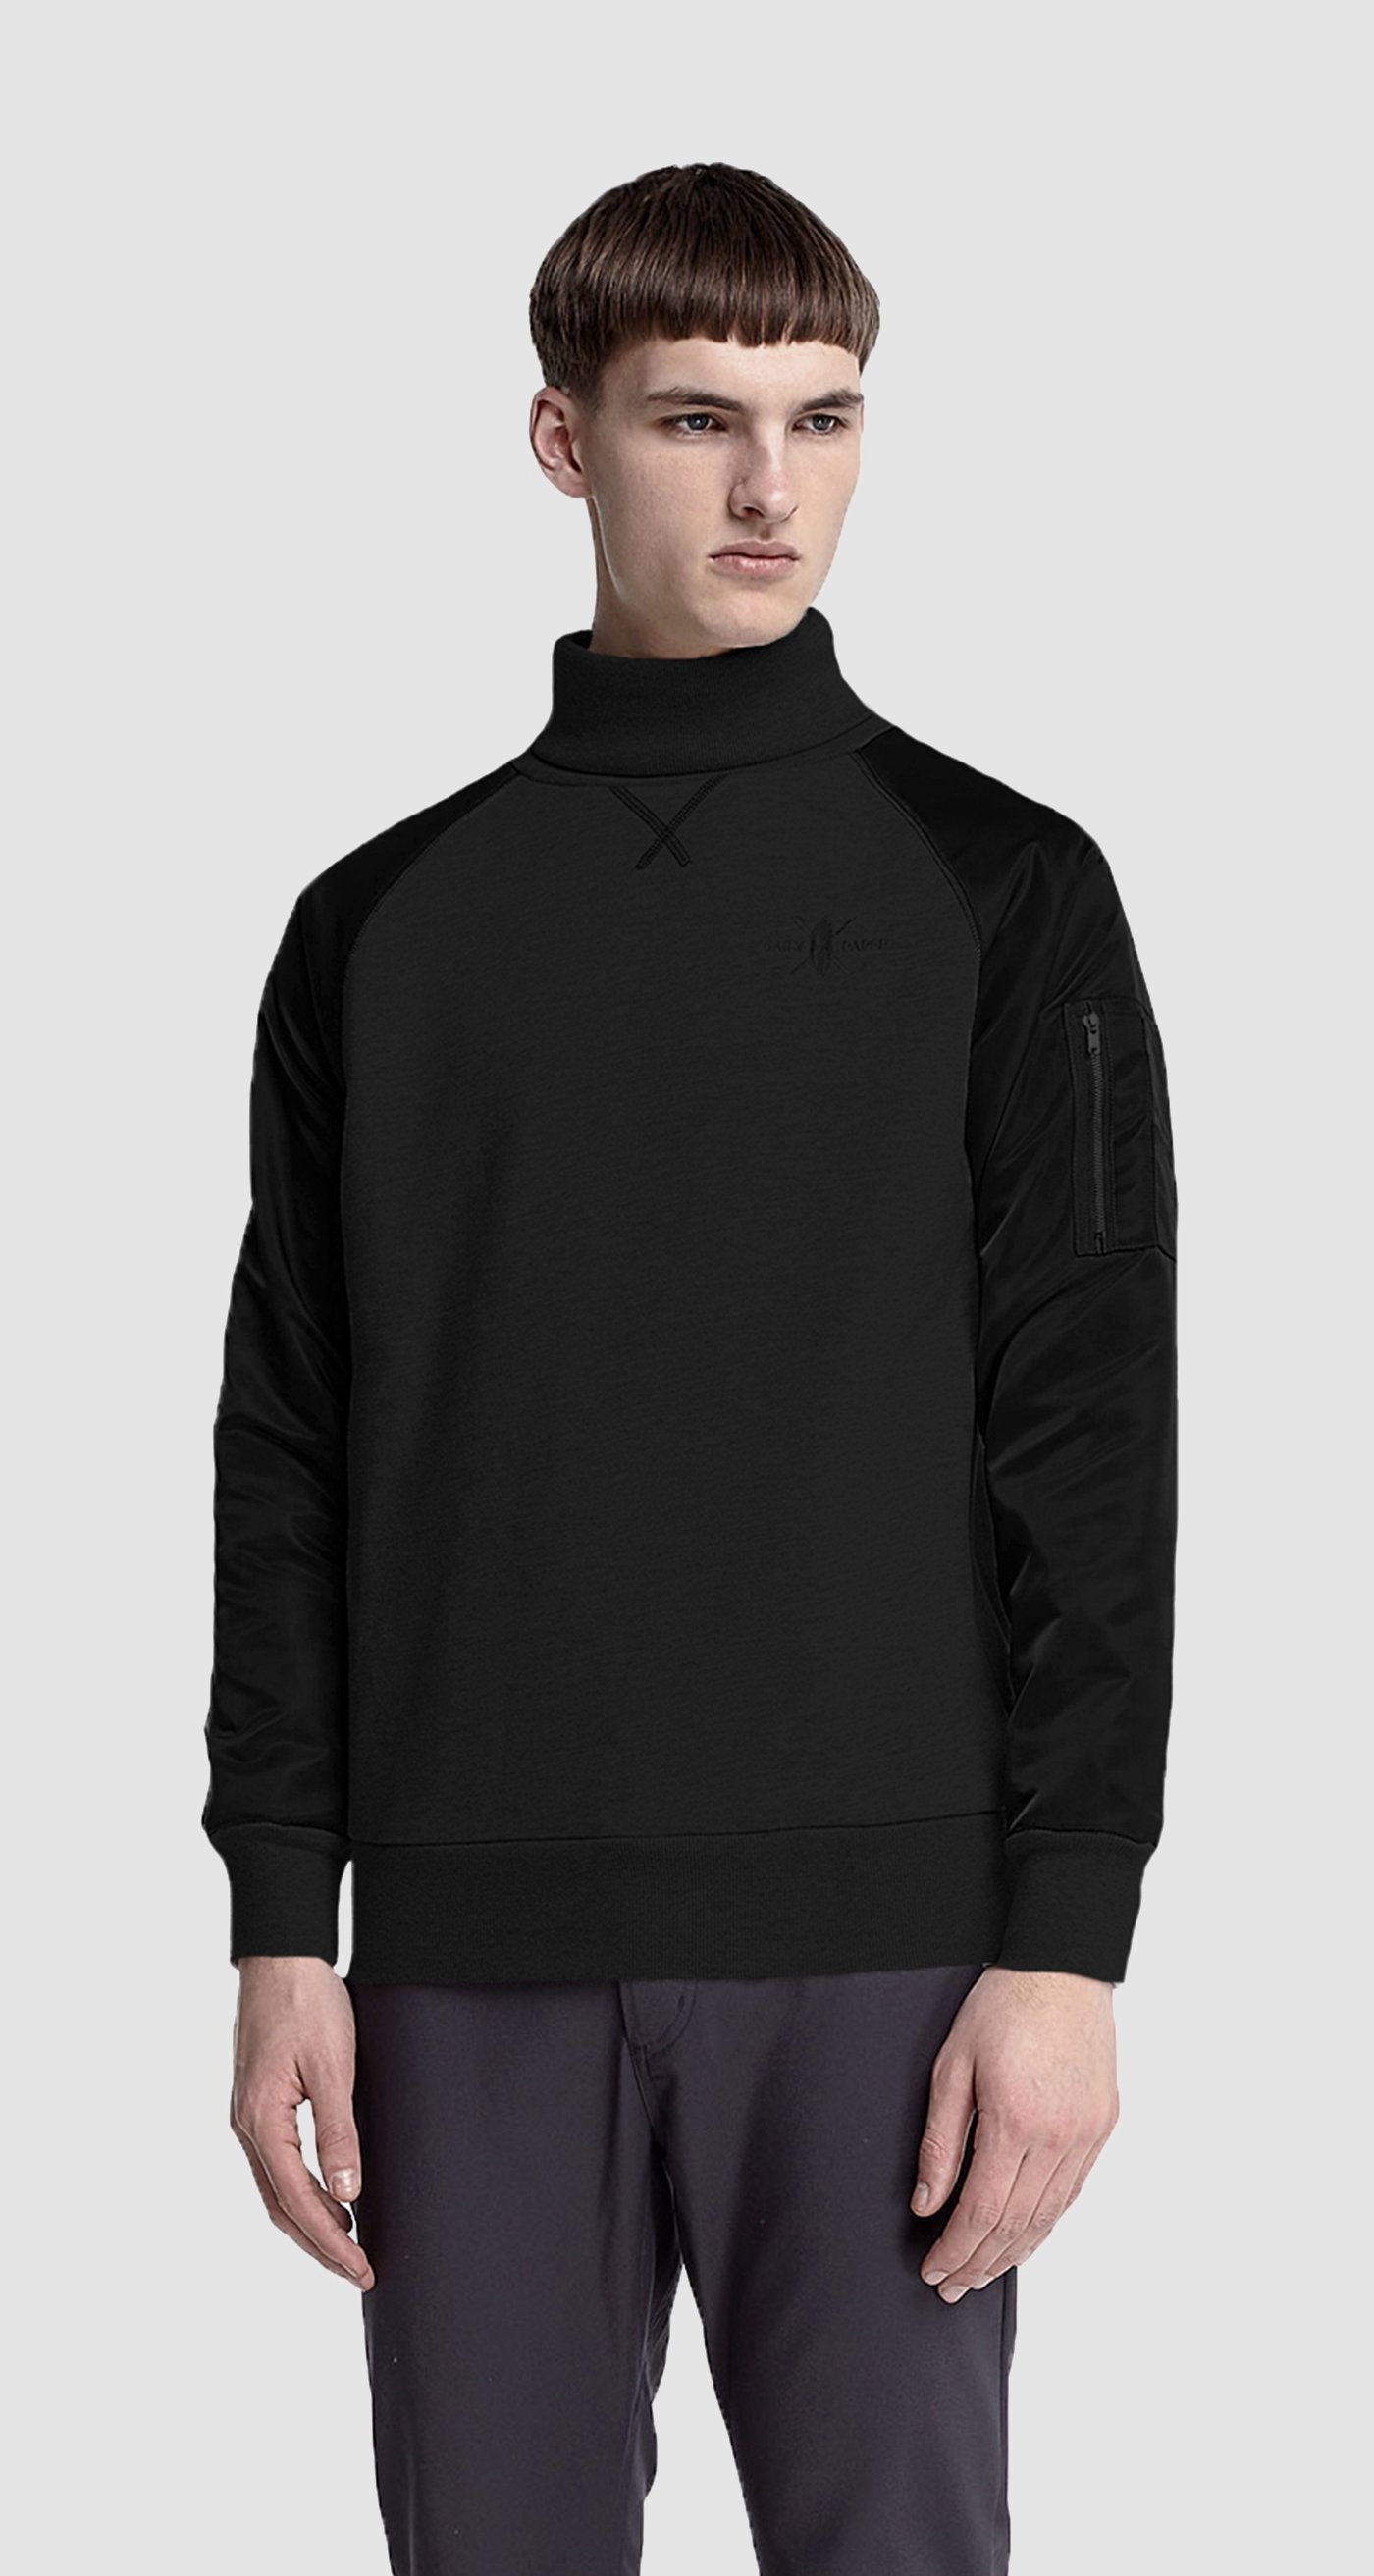 Black High Collar Sweater